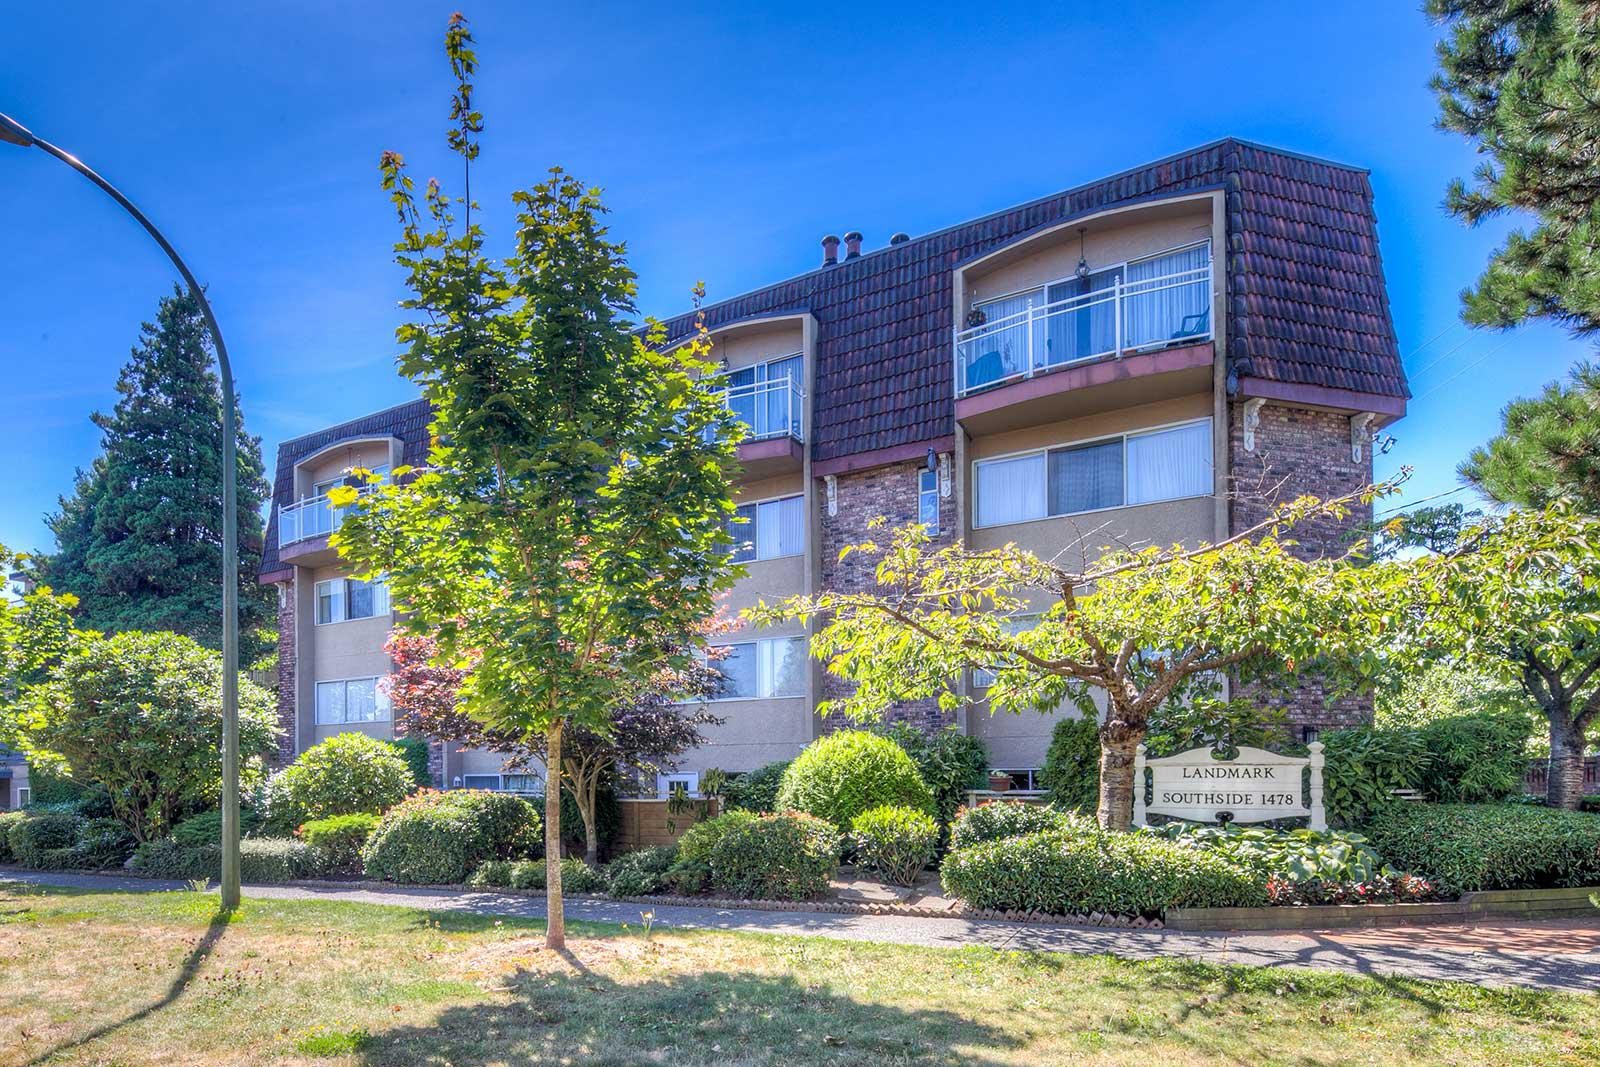 Landmark Southside 1478 at 1478 W 73rd Ave, Vancouver 0